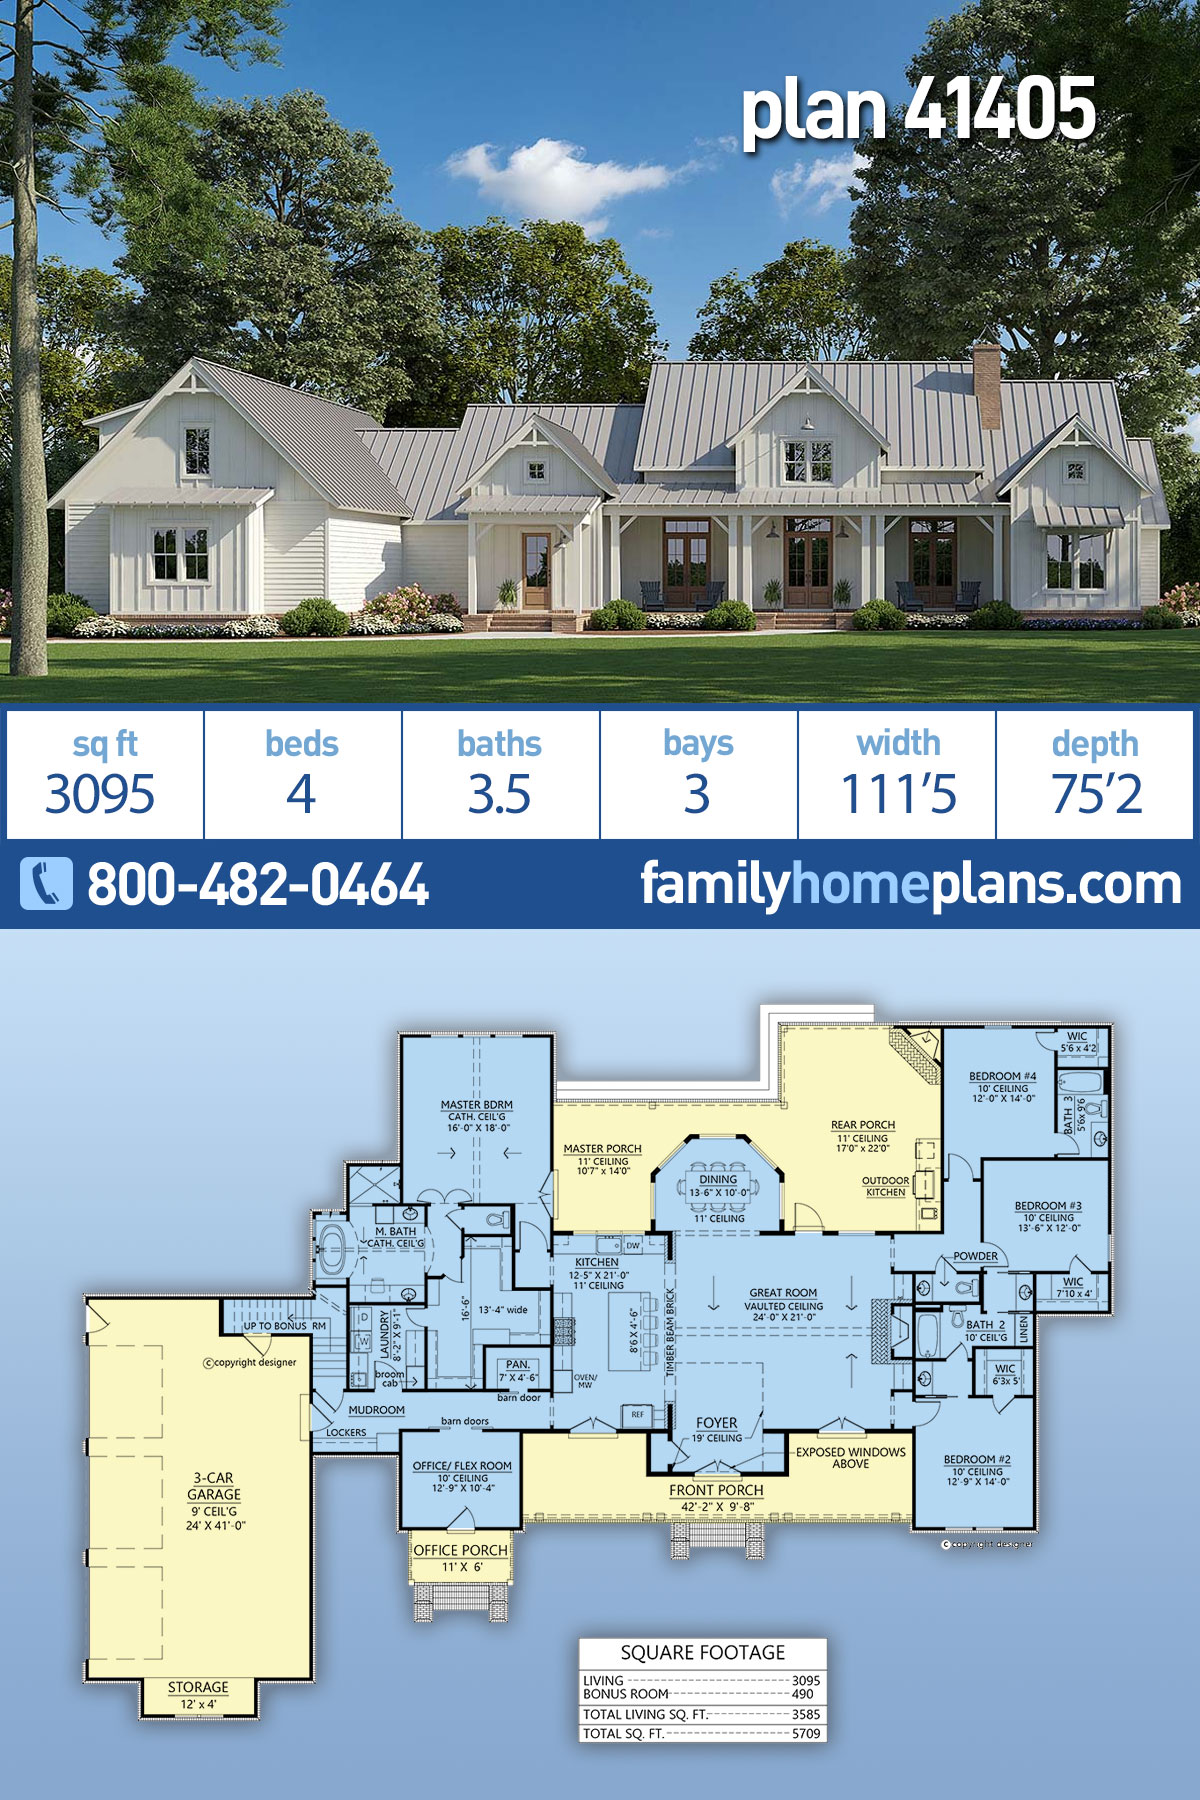 Country, Modern Farmhouse House Plan 41405 with 4 Beds, 4 Baths, 3 Car Garage